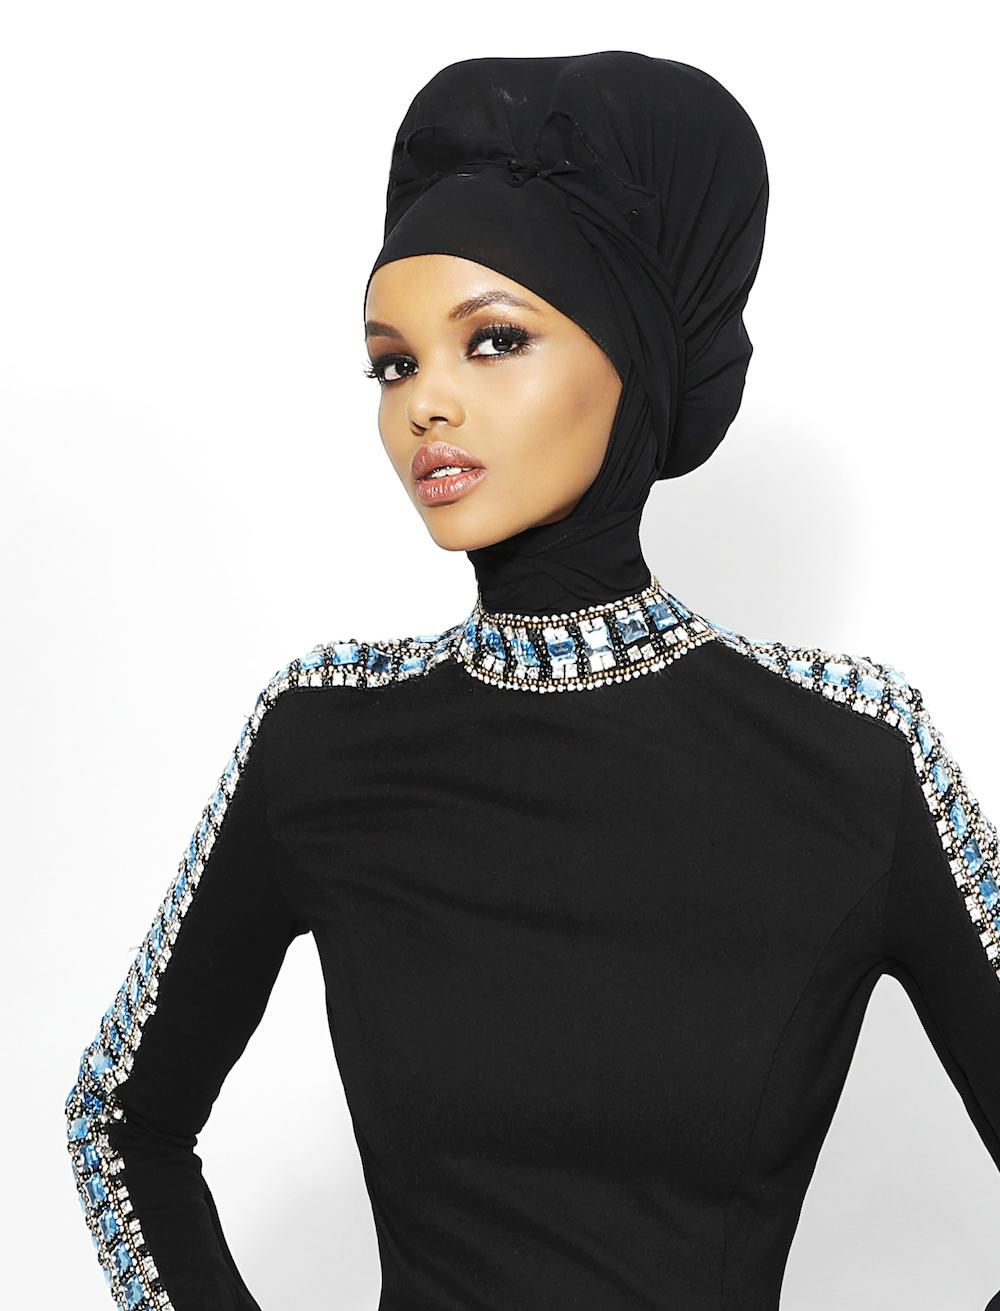 How To Become A Model Halima Aden Didn't Feel Represented In The Media  As A Somaliamerican Muslim Growing Up